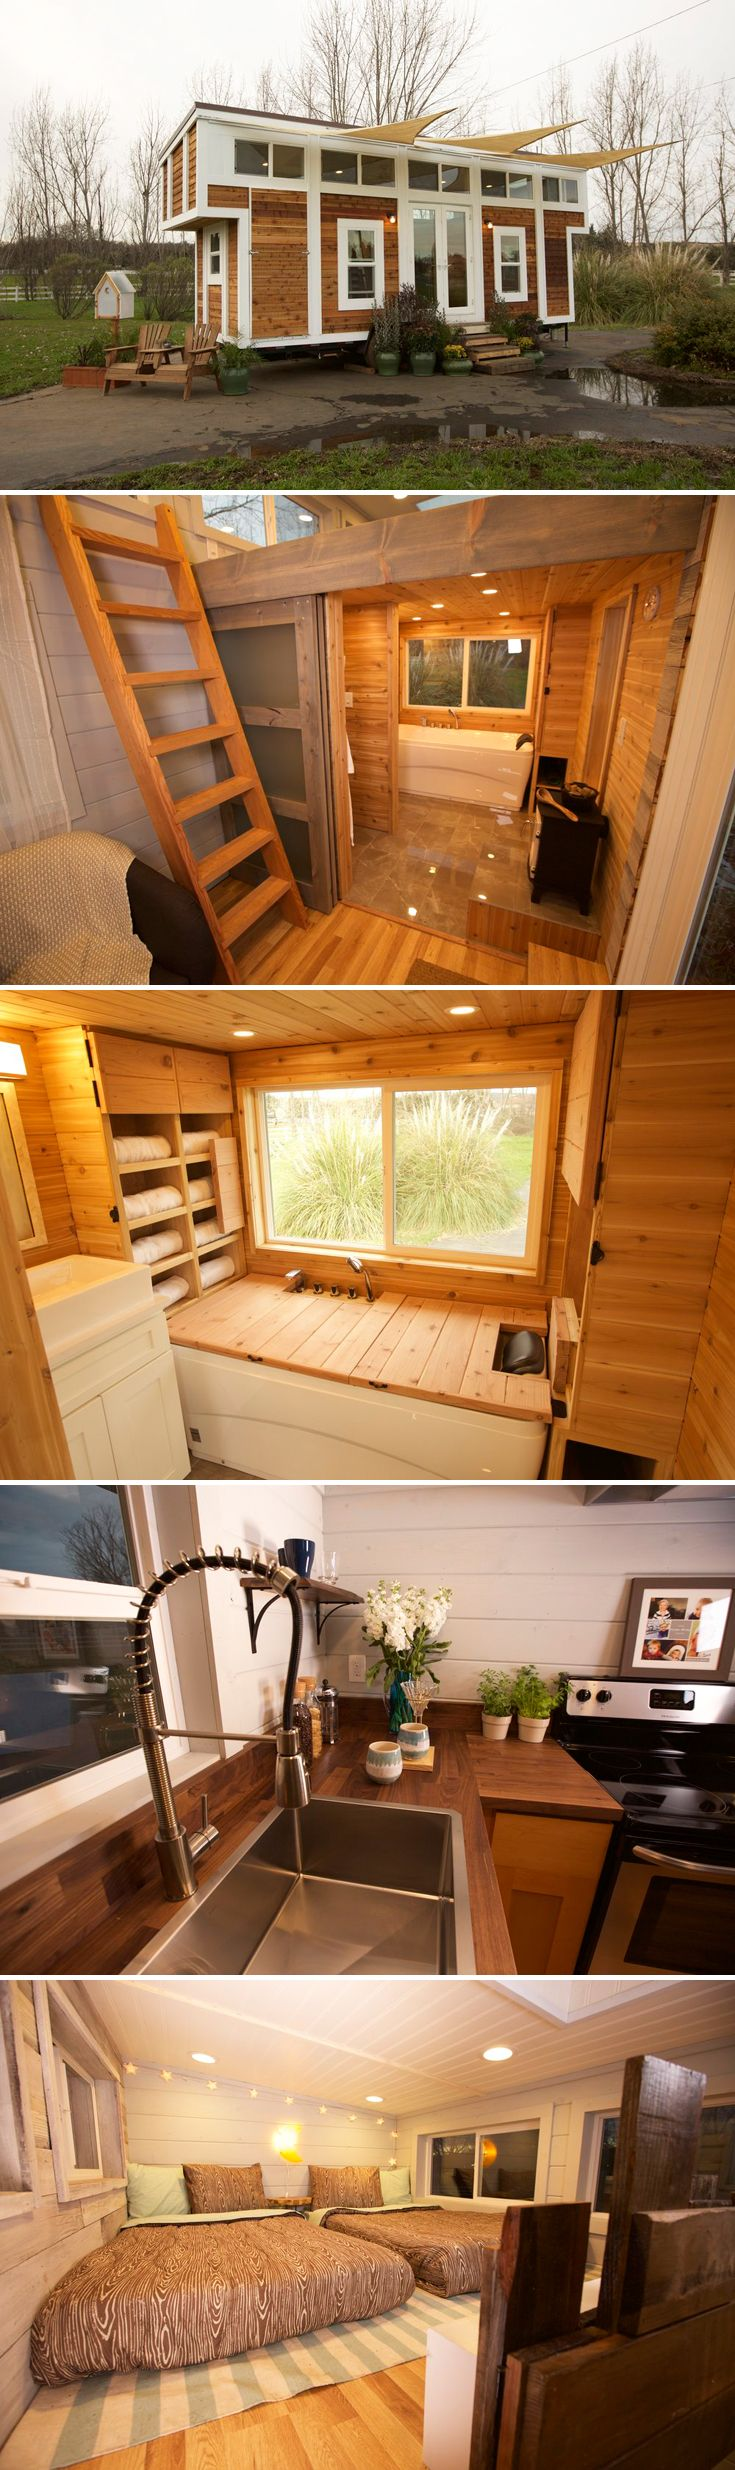 Best 25+ Saunas ideas on Pinterest | Sauna ideas, Sauna design and ...